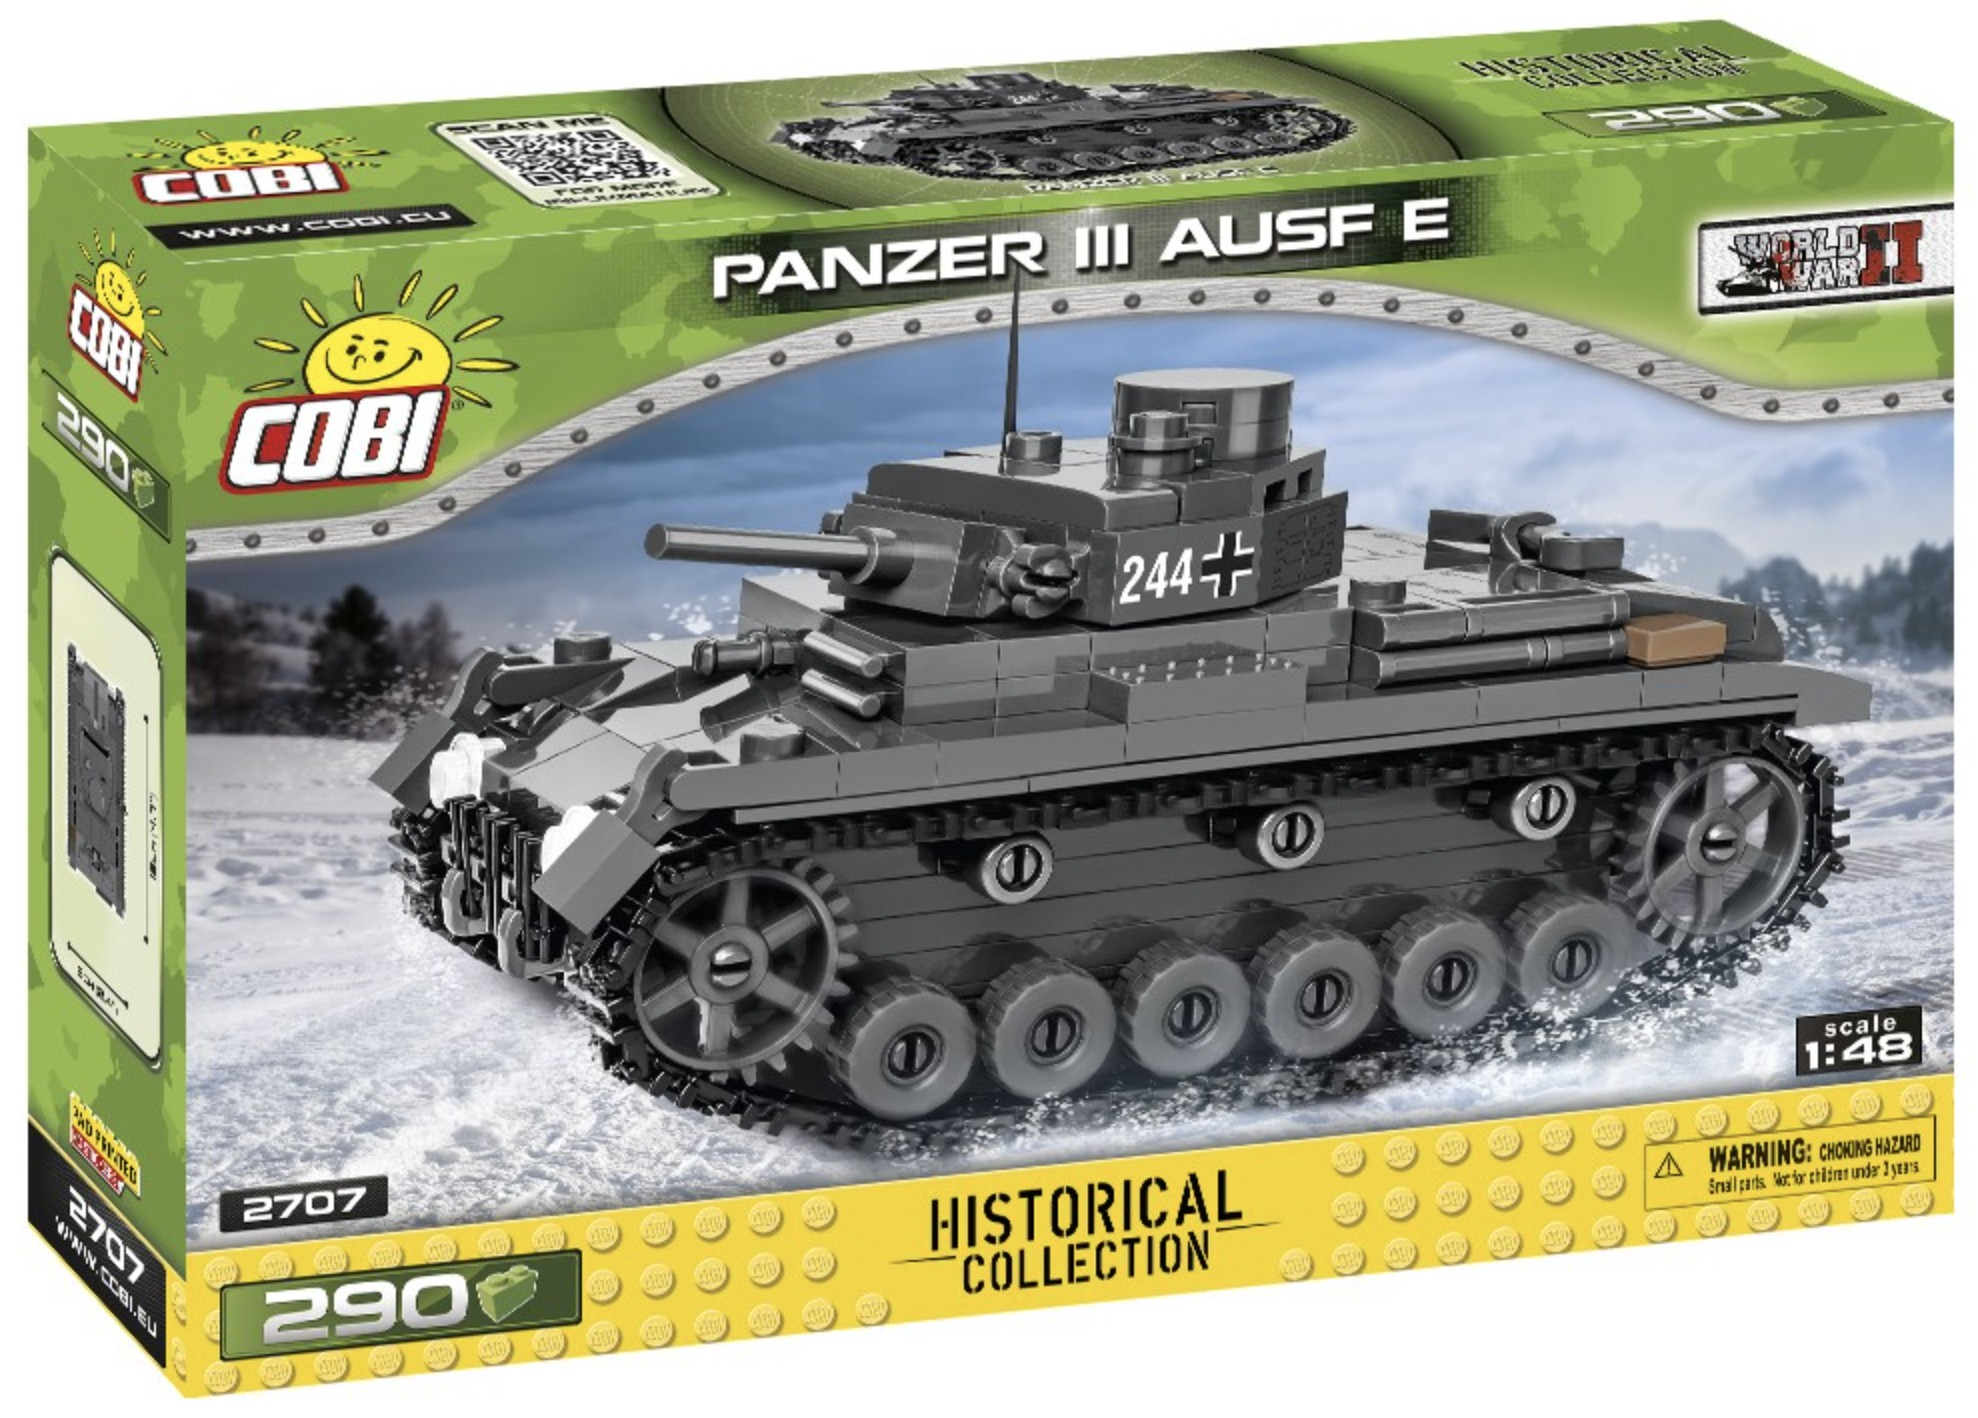 2707 - Panzer III Ausf. E photo